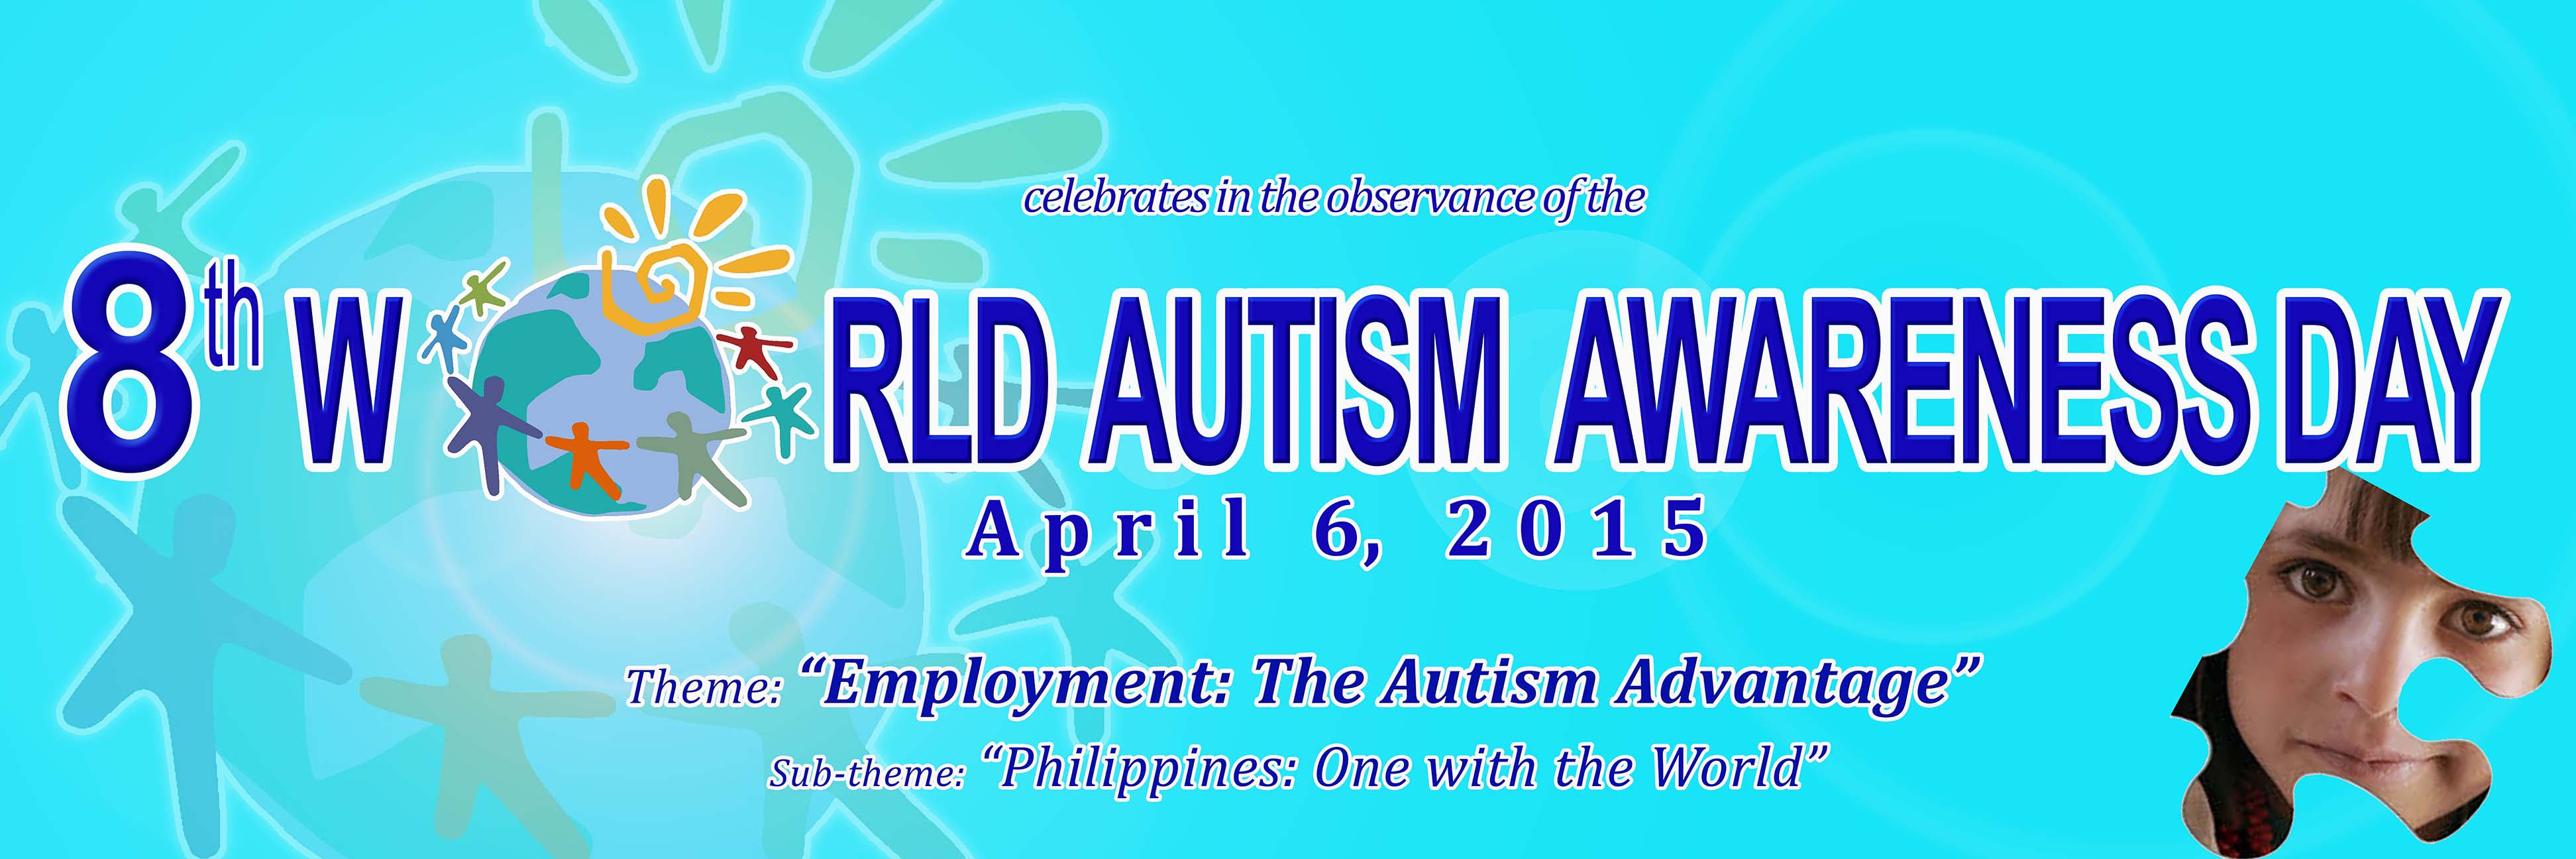 8th World Autism Awareness Day